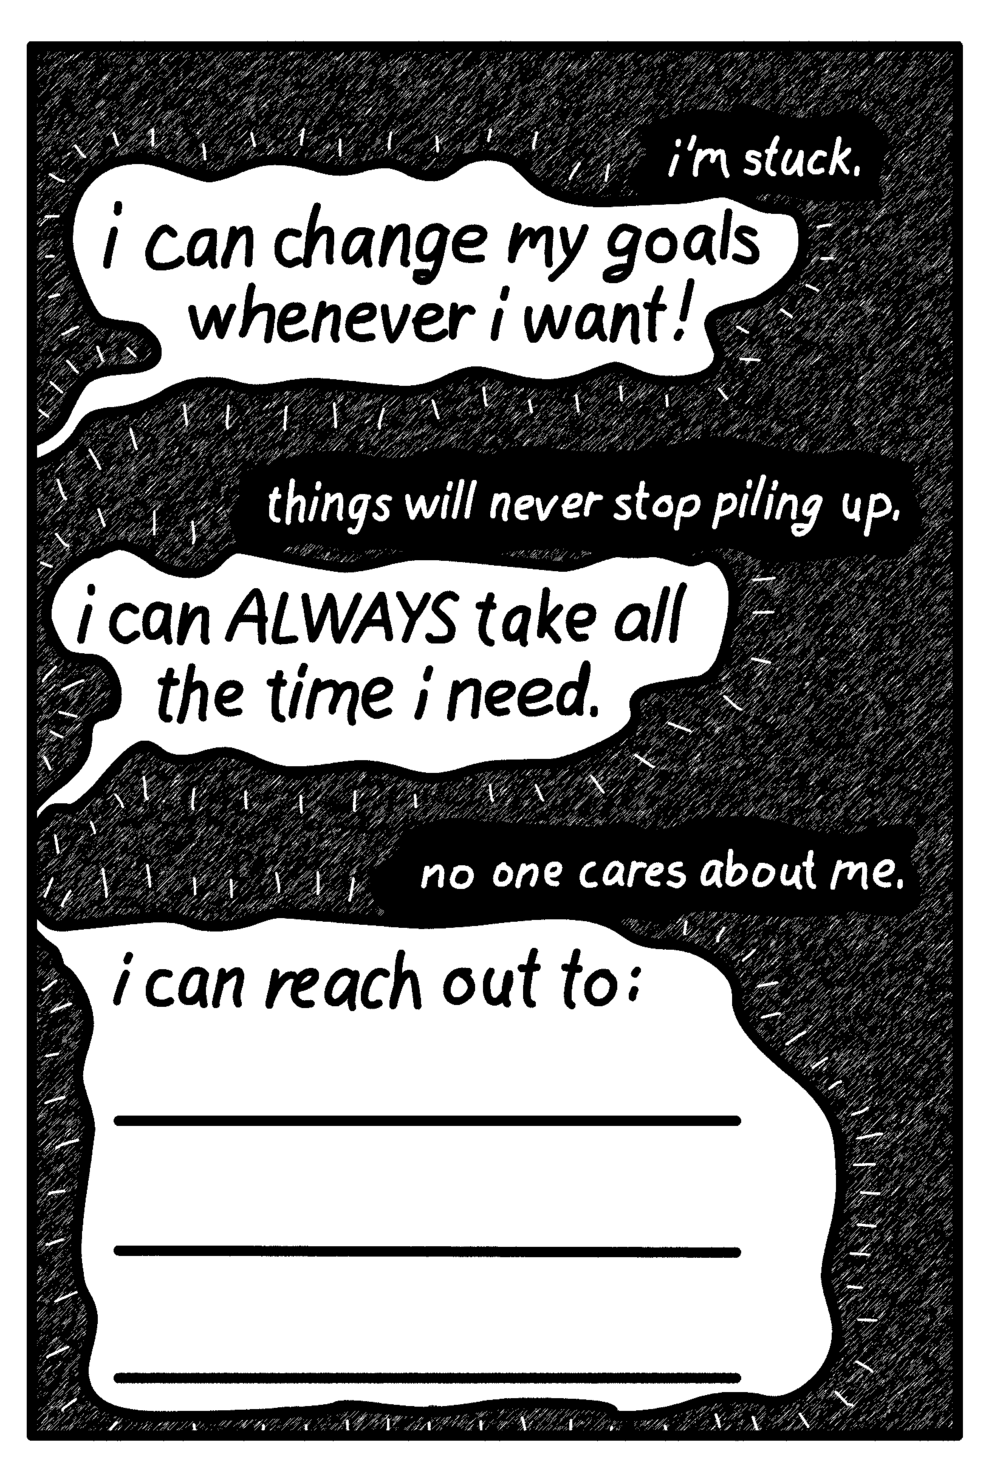 page 7bw.png